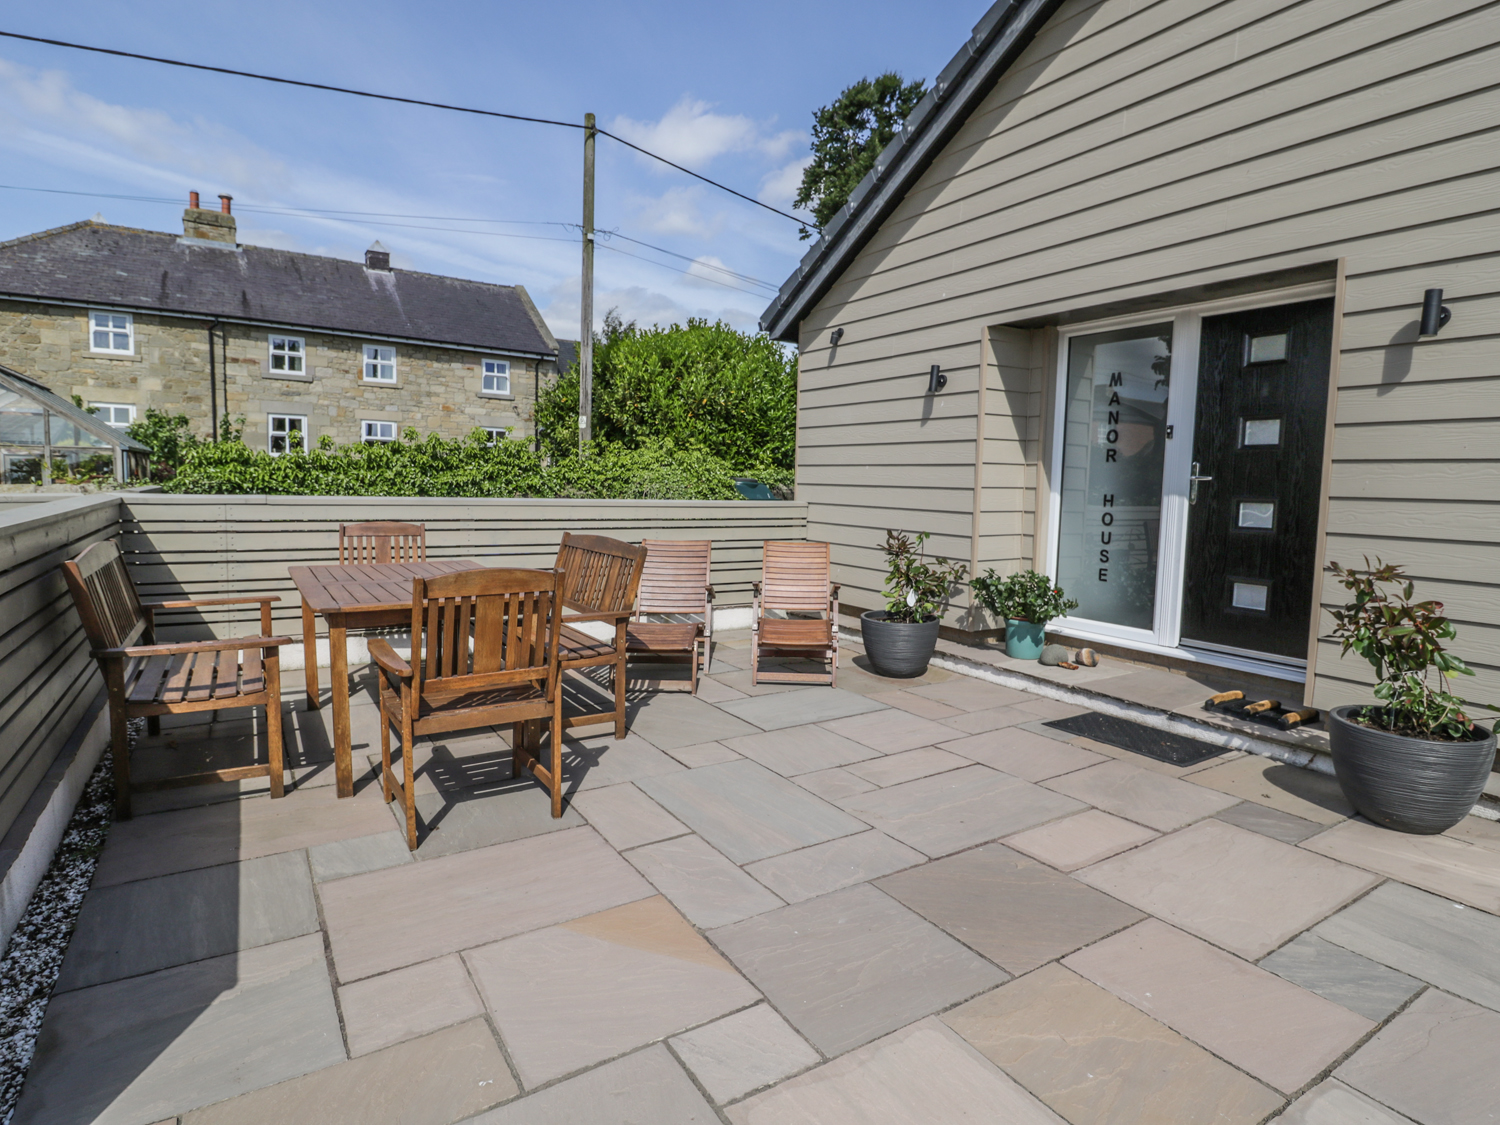 5 bedroom Cottage for rent in Morpeth